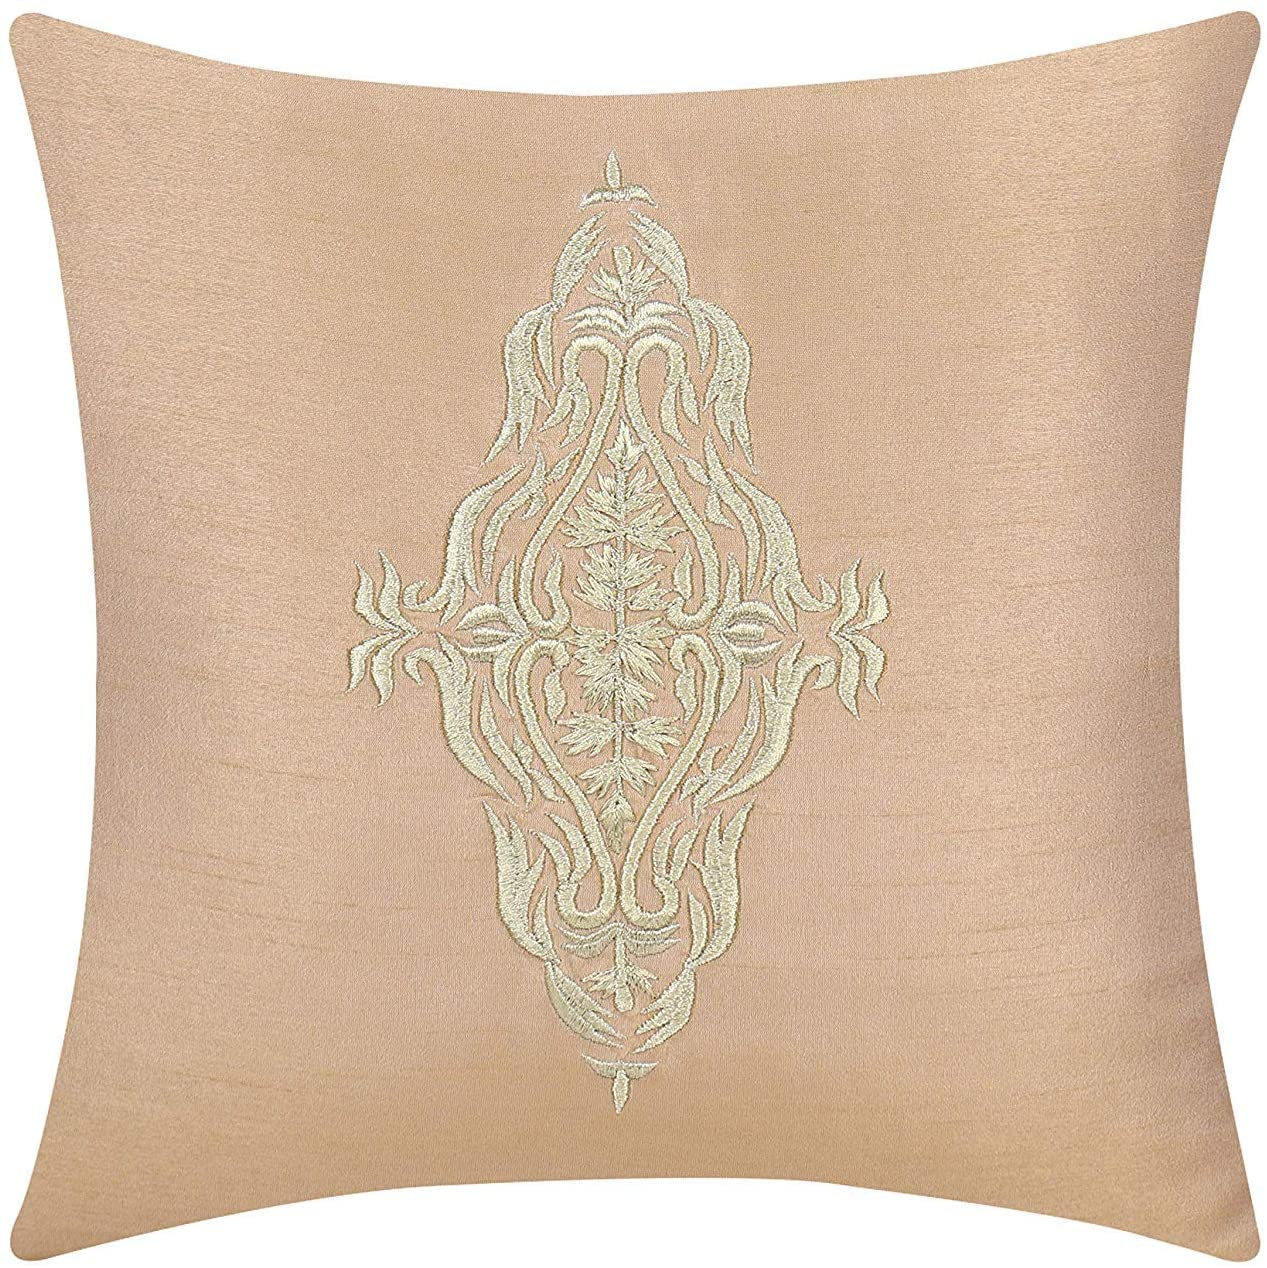 The White Petals Gold Decorative Pillow Cover (Embroidered Damask in Gold, 20x20 inch, Pack of 1)